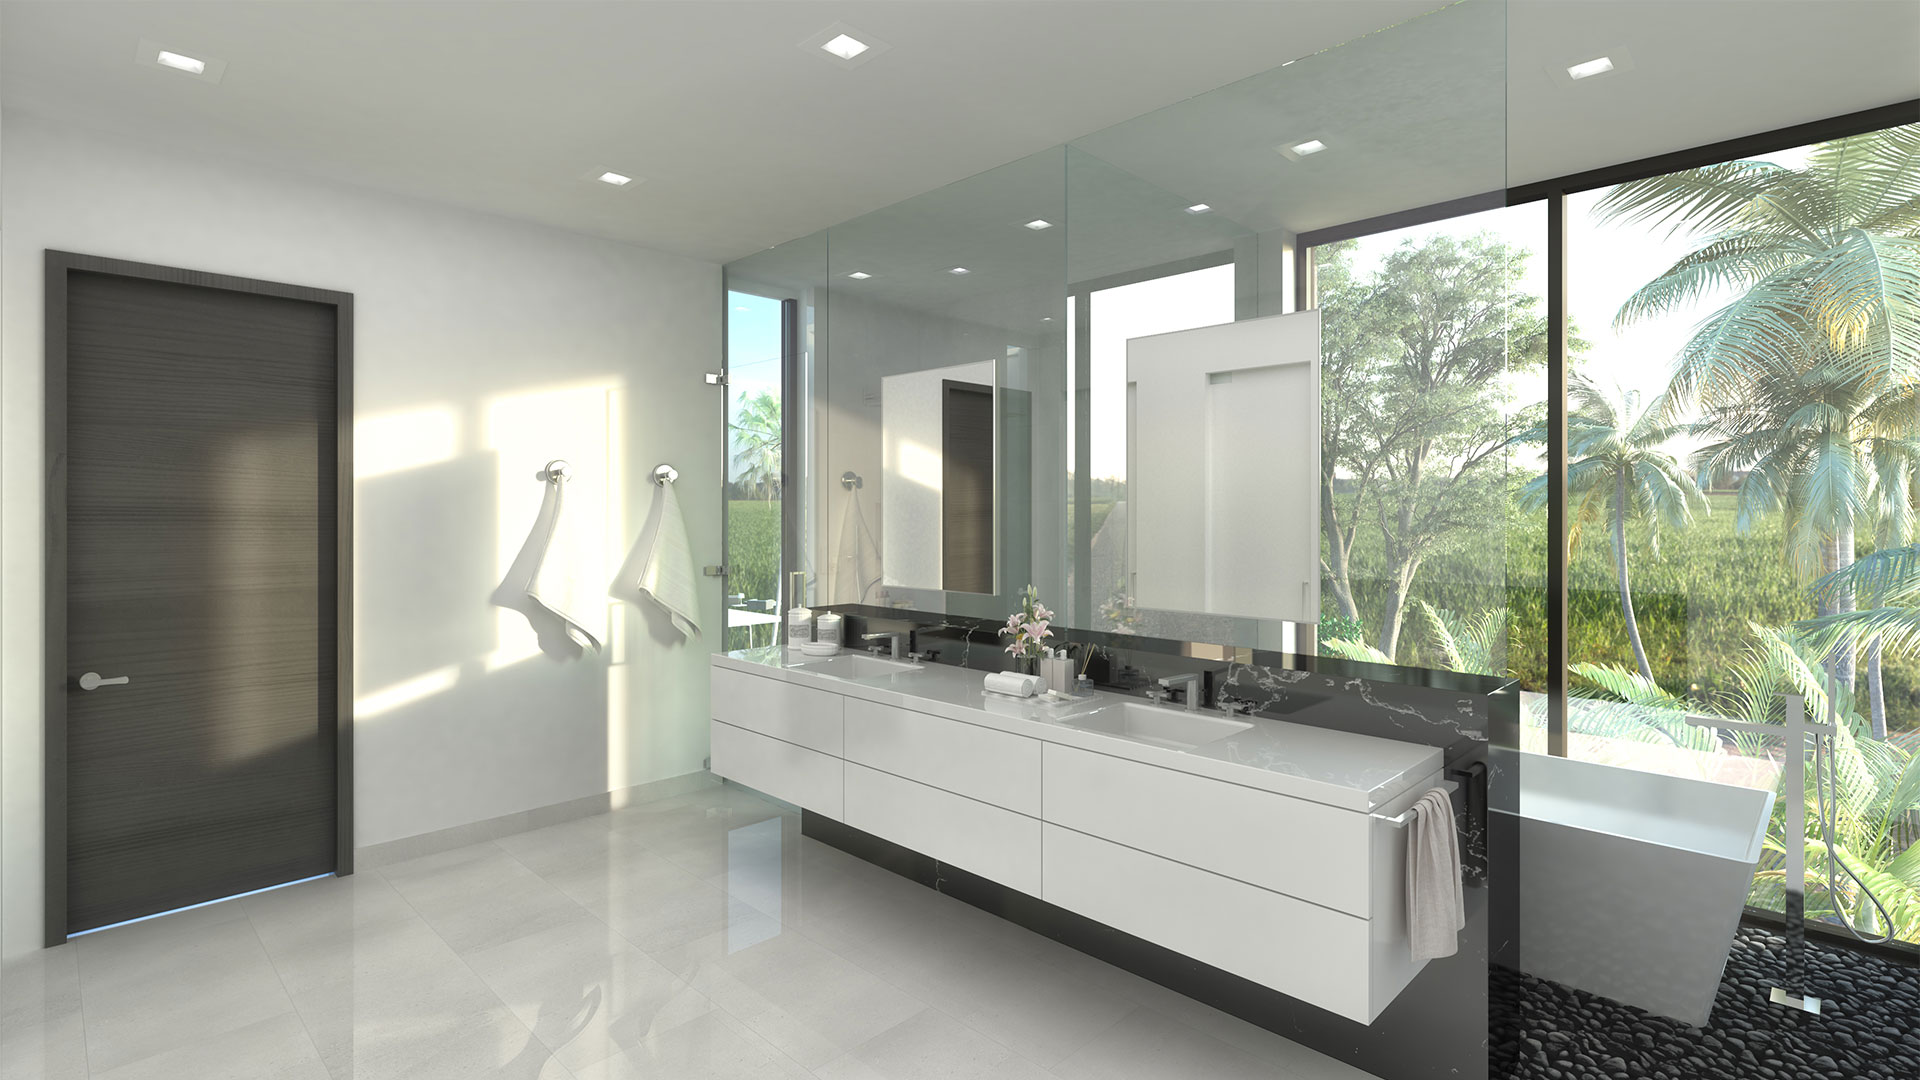 We developed the Interior Design of the 9961 Bay Harbor, Florida